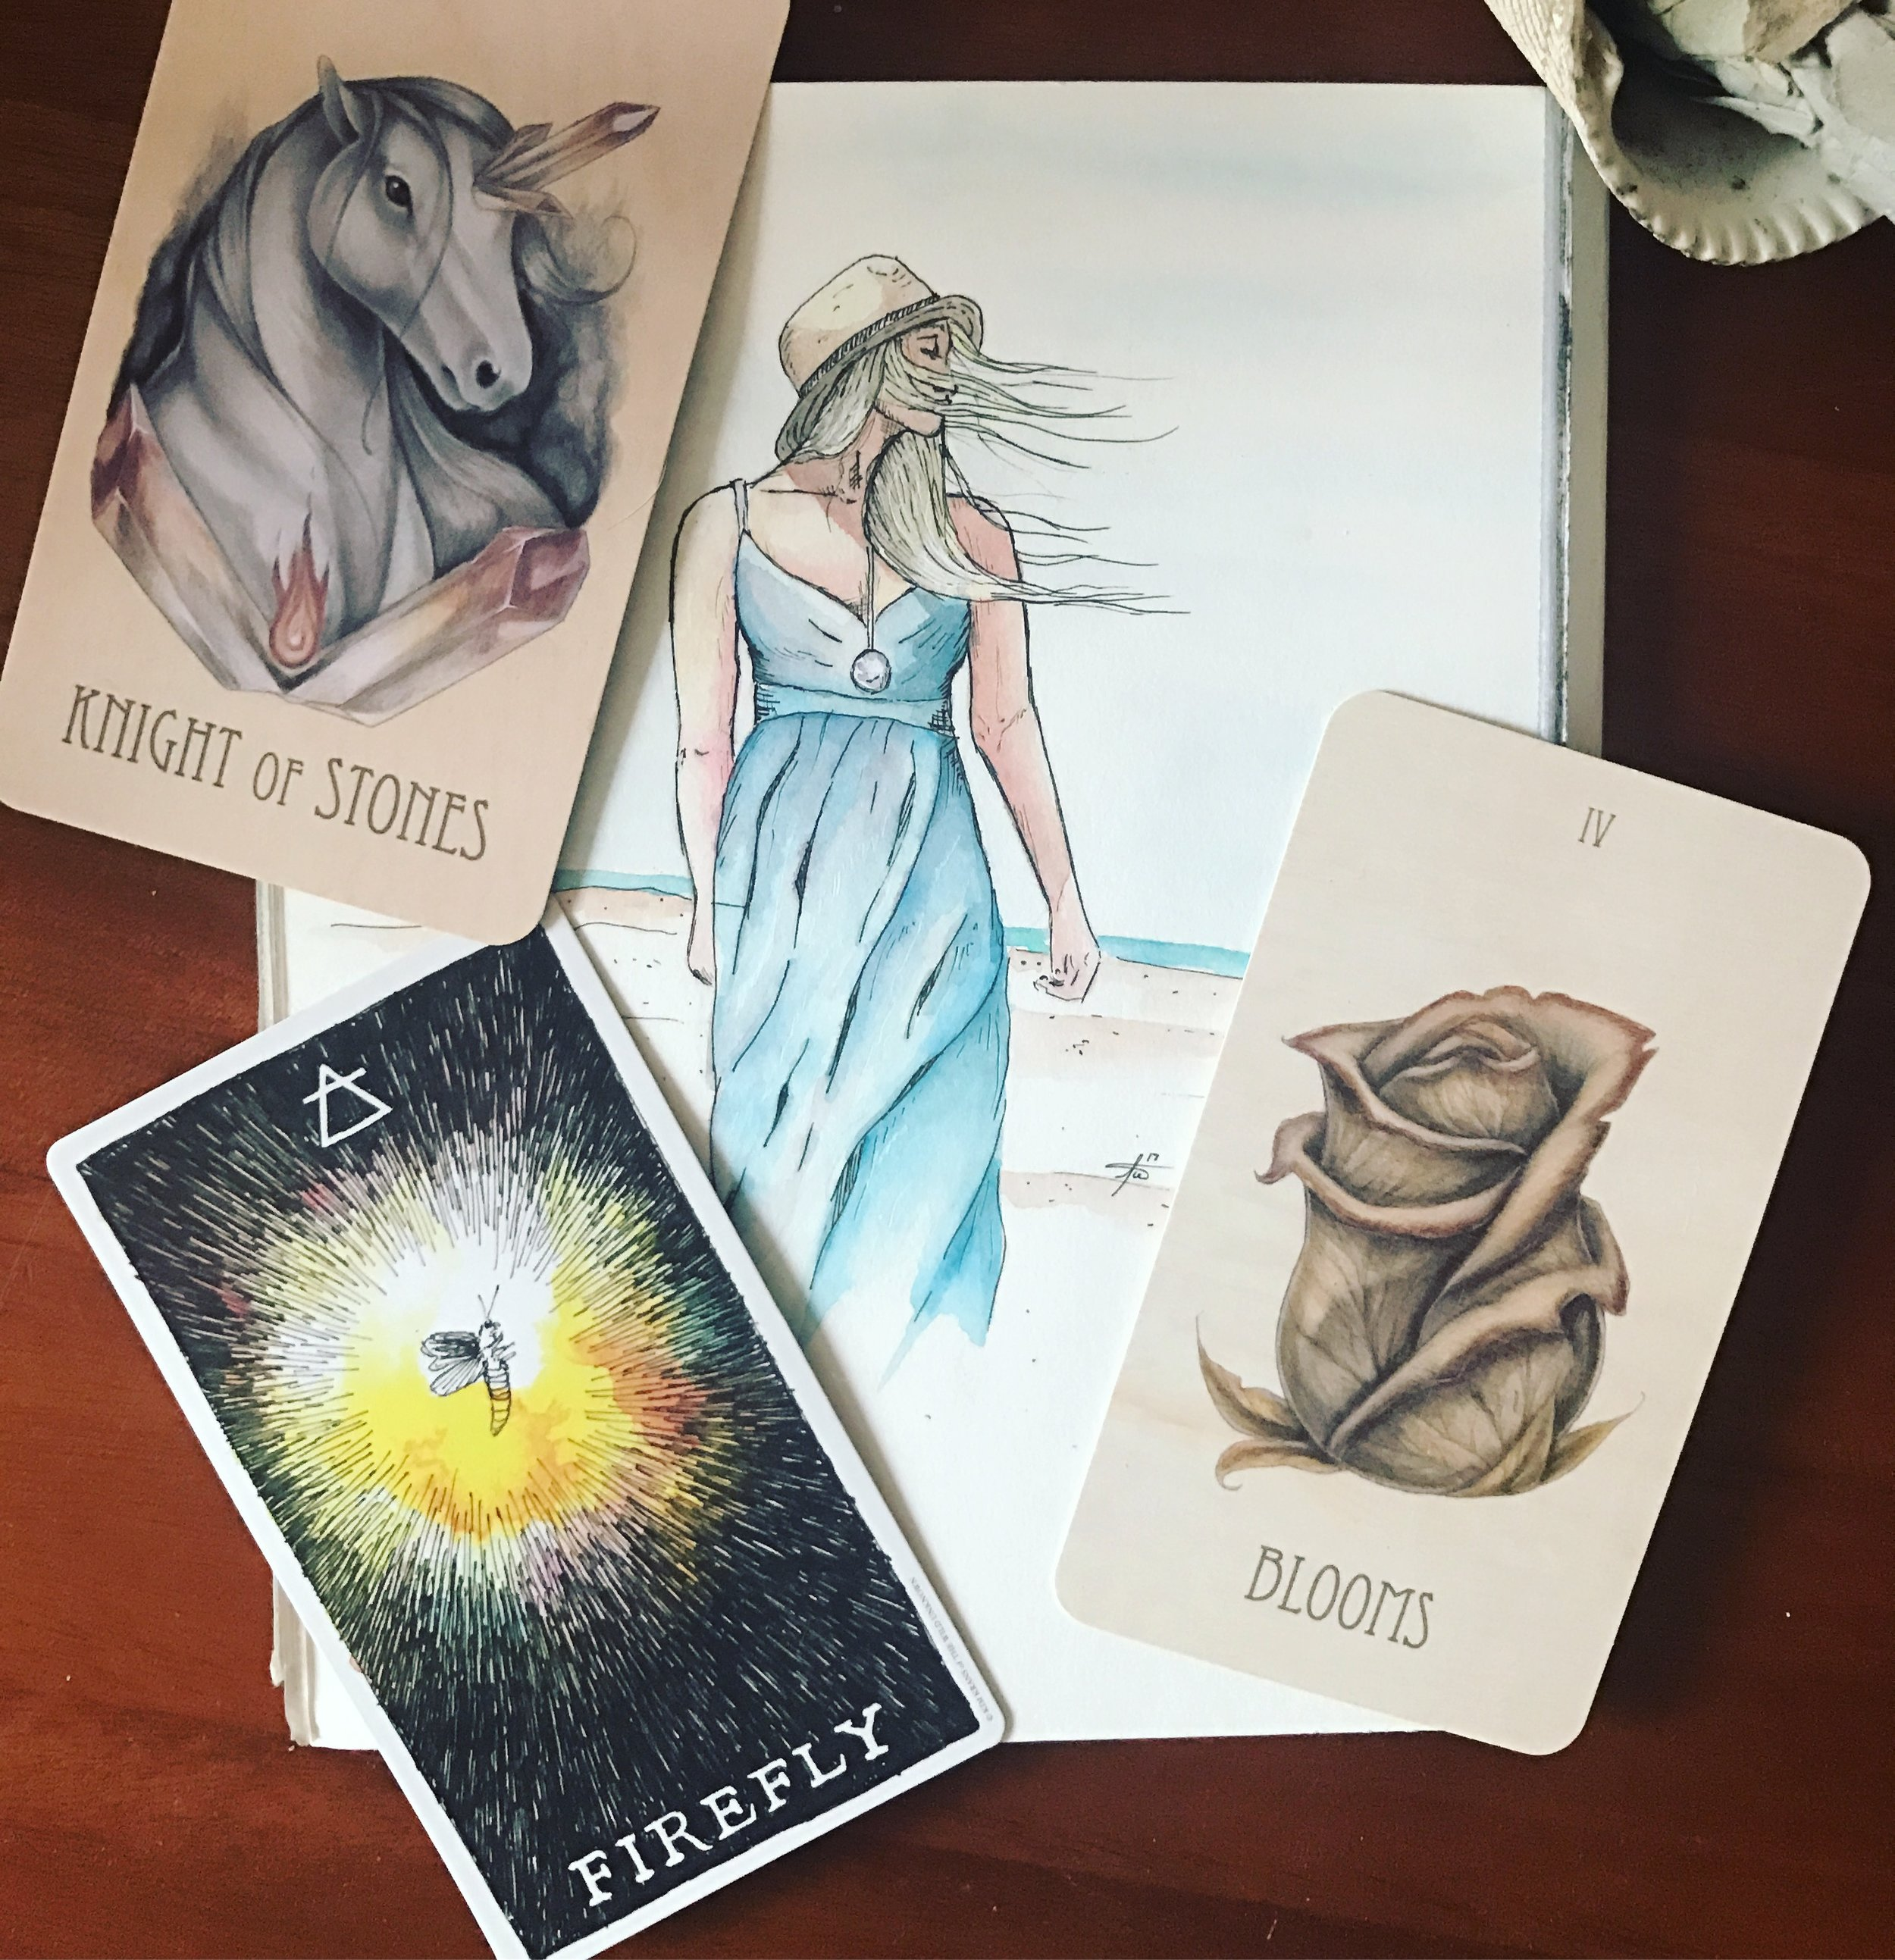 The eclipse and new moon this weekend is occurring in the deep waters of Pisces, and is even conjunct the ruler of this eclipse - Neptune. Also happening on the same day, Mars is conjoining Uranus in Aries, adding some fire and lightning to the mix. How well will our emotions/intuition play with our determination/willpower? I think they will play quite nicely and to our advantage if we channel this energy into fire and water's common ground: our creativity.  And that is very much what today's draw is about (gotta love the synchronicity of the divine)! We can use the moody, deep, reflective, imaginative energy of this eclipse in combination with the passion and anger stirred up by mars to get our pens to paper, brush to canvas, fingers to keyboards, hands to scissors, feet to trails, needles to yarn, etc. Don't waste the inspiration and powerful energy of this moment. Use it to its full advantage, because it will dissipate and all that could have been will be lost, forever.  Seriously. This moment is that special. I wish that temperance would have shown up today, because I just keep thinking of the Wild Unknown's depiction of the heron blending fire and water. Our stars are doing just that, giving us the aid and opportunity to do the same within ourselves. We are being granted an opportunity to connect to a deeper understanding of alchemy. What a gift!  Not to mention the wealth of transformation being offered by this eclipse in and of itself! I highly recommend reading some astrologers' accounts and interpretations.  I included this beautiful piece by my partner, Tim. You can find more of his work in Instagram @artisitador :D  Have a powerful weekend loves.  Blessed be.